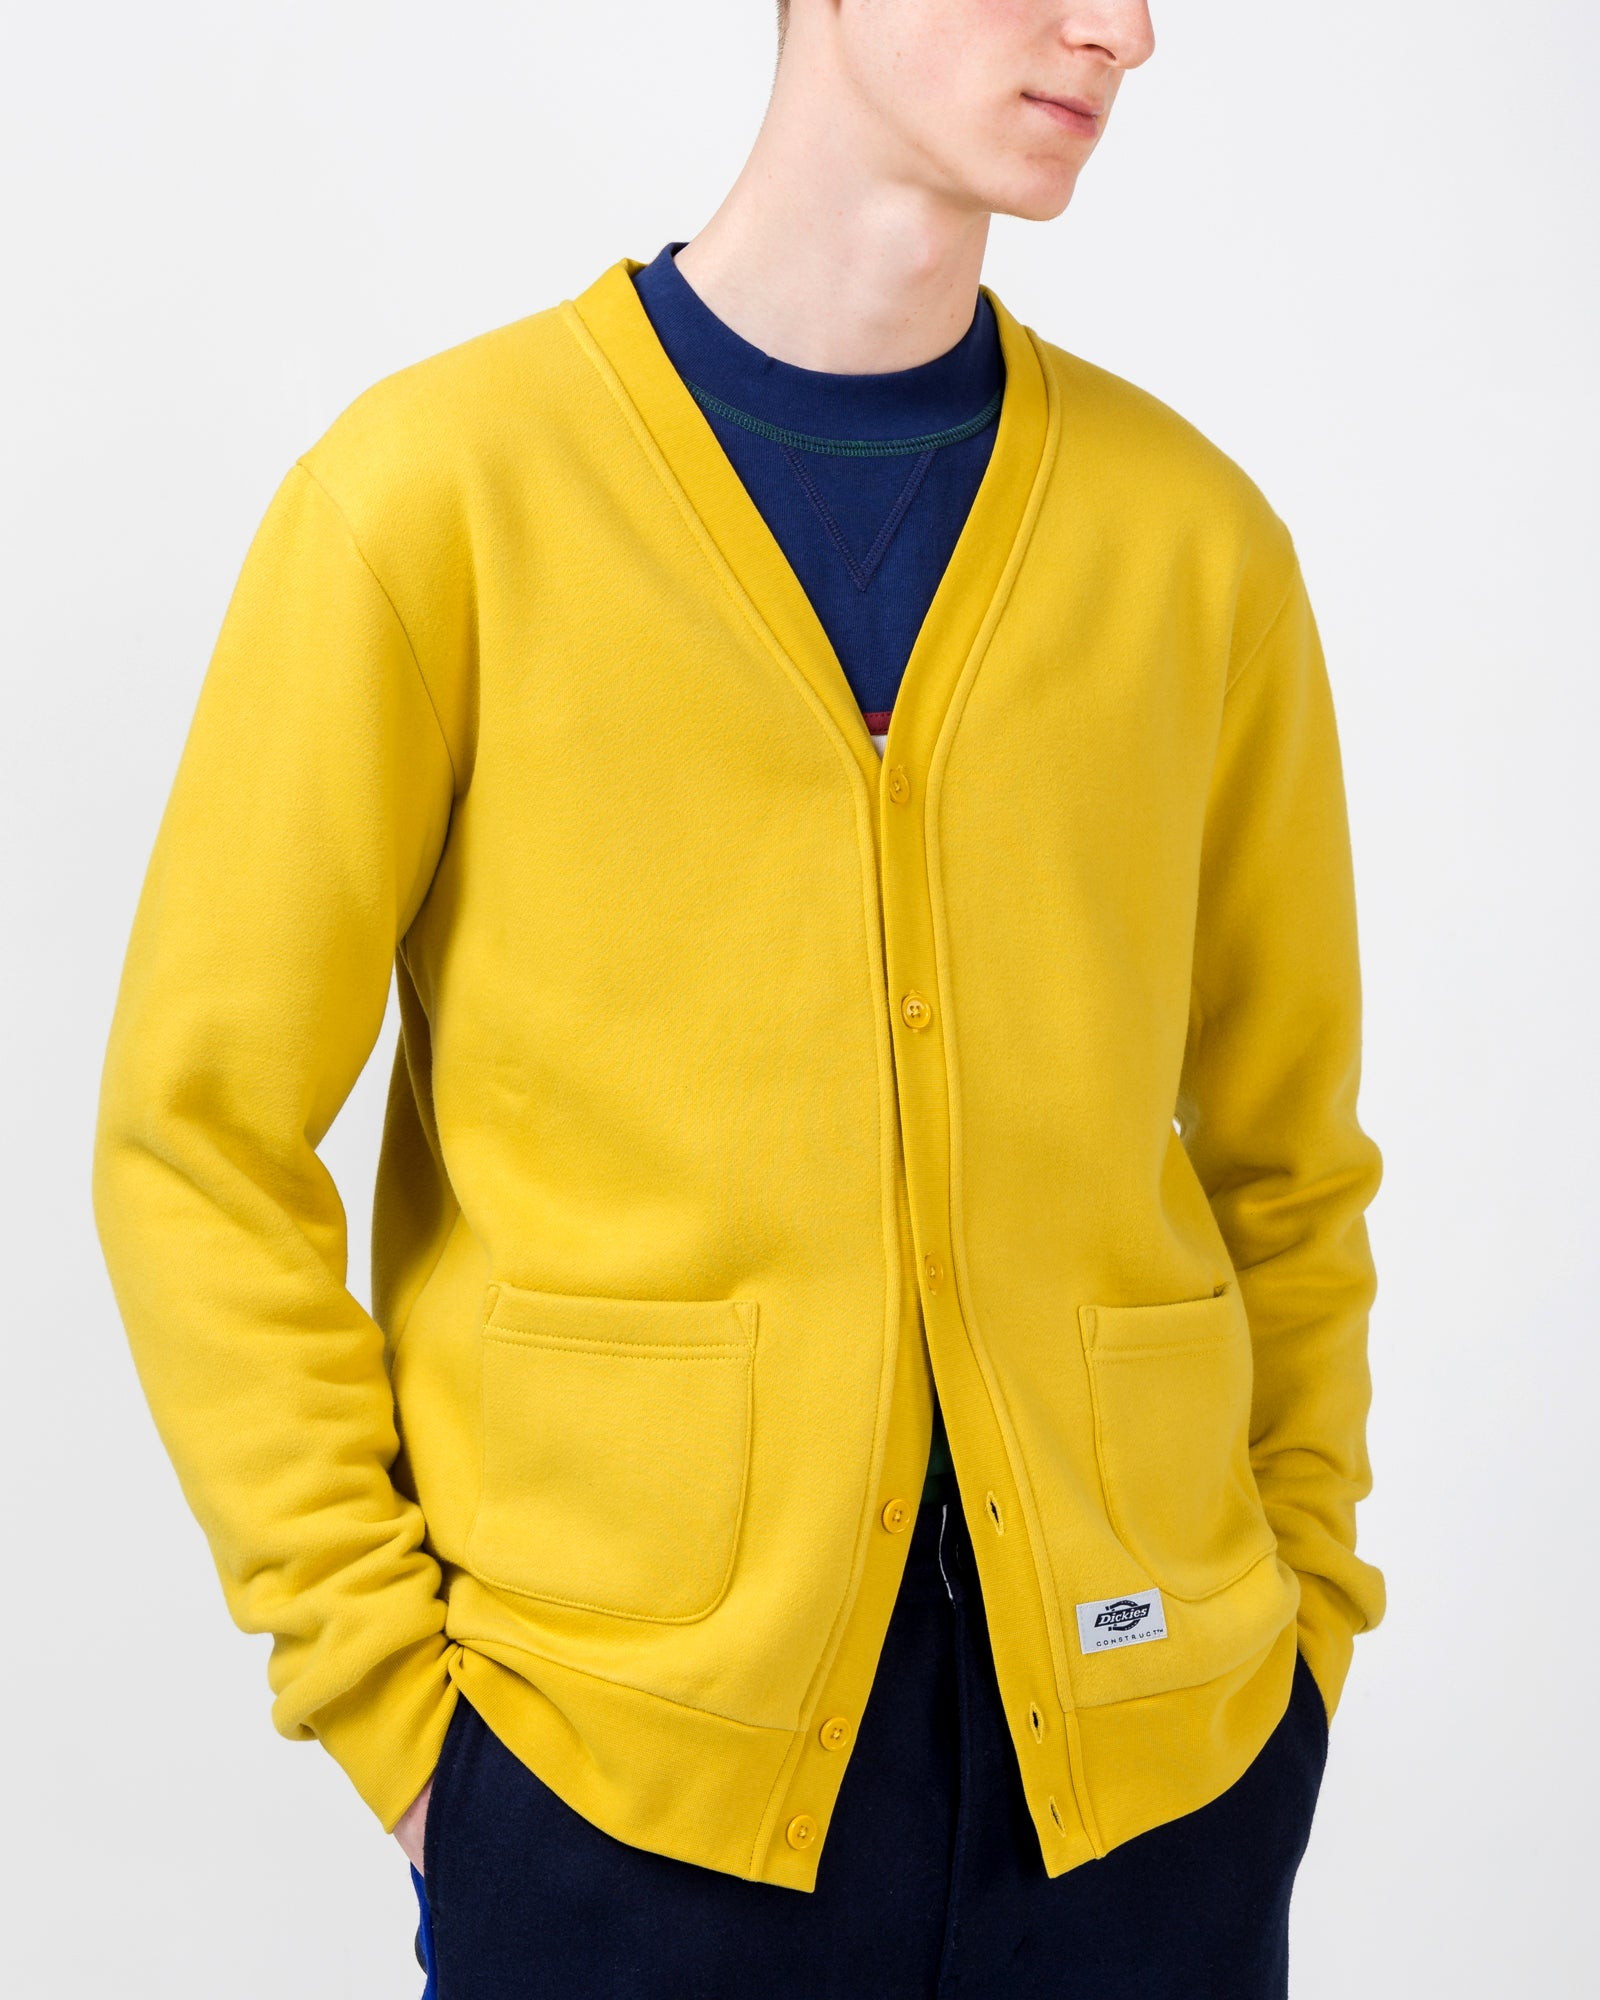 Cardigan in Yellow | Dickies Construct